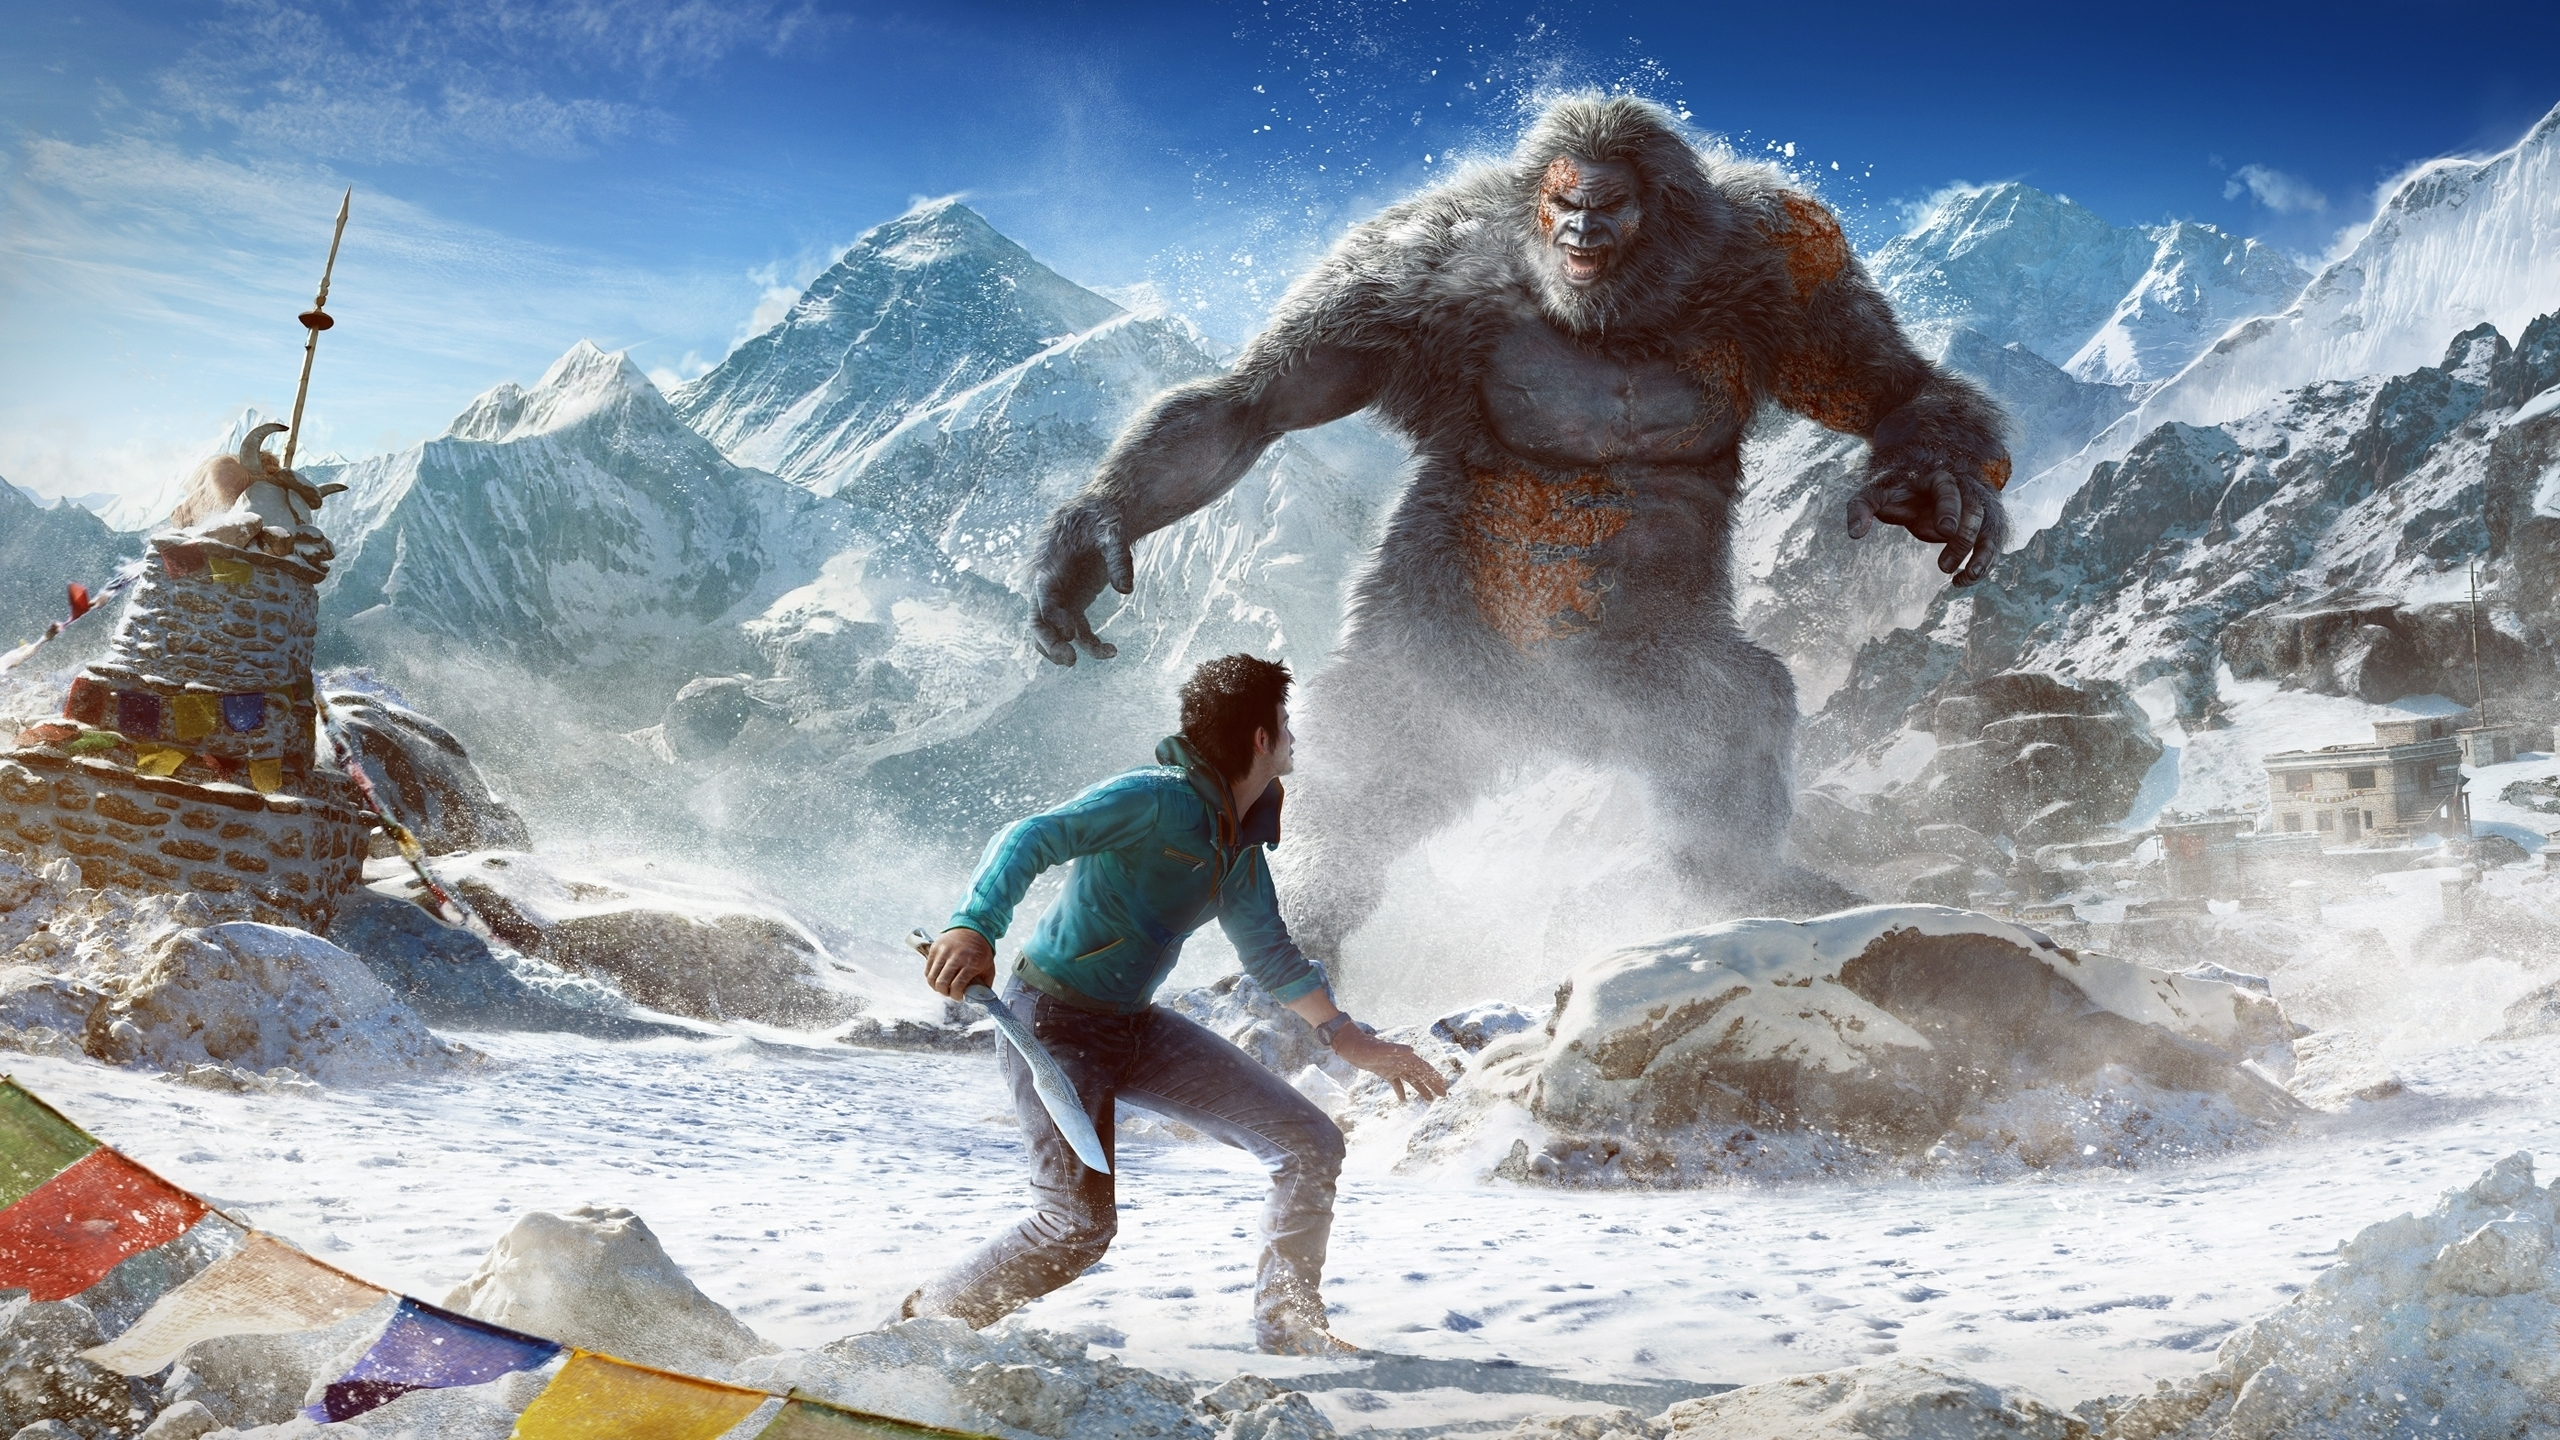 Yetis 4k Wallpapers For Your Desktop Or Mobile Screen Free